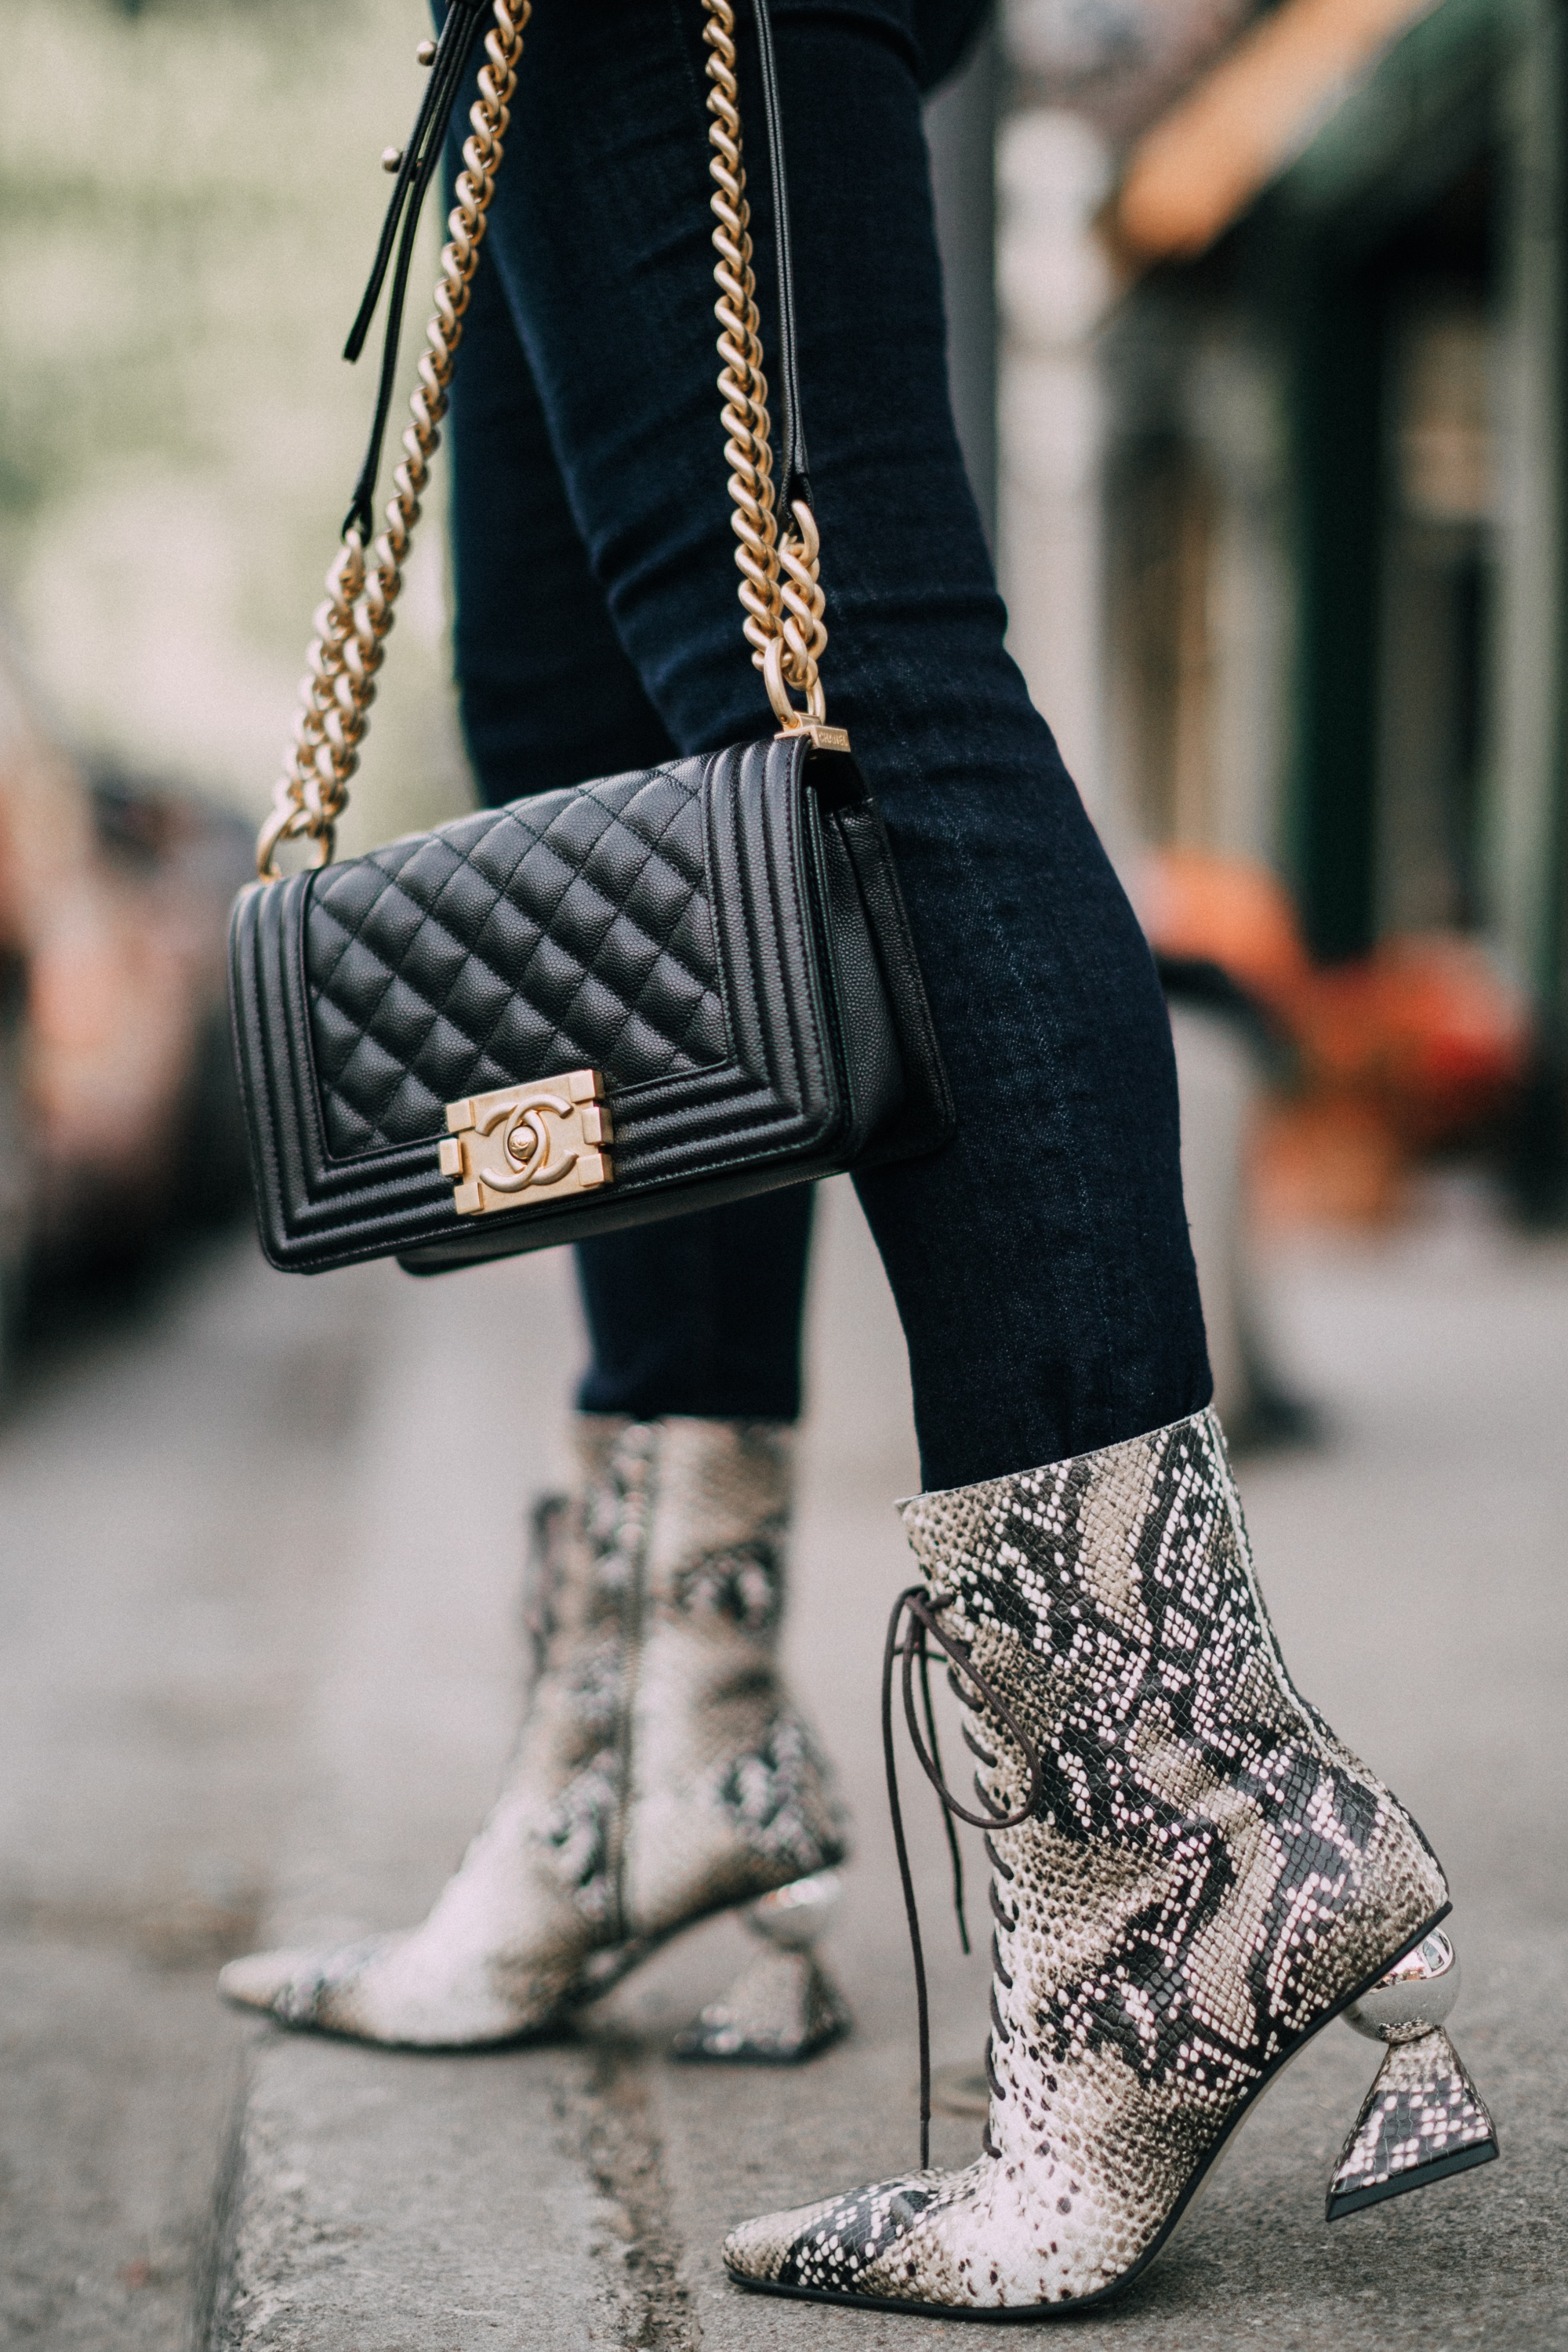 Yuul Yie, Fashion blogger Erin Busbee of BusbeeStyle.com wearing dark wash skinny jeans by L'Agence, leopard print bodysuit by ASTR the label, black Chanel boy bag, and Yuul Yie python boots in Telluride, CO